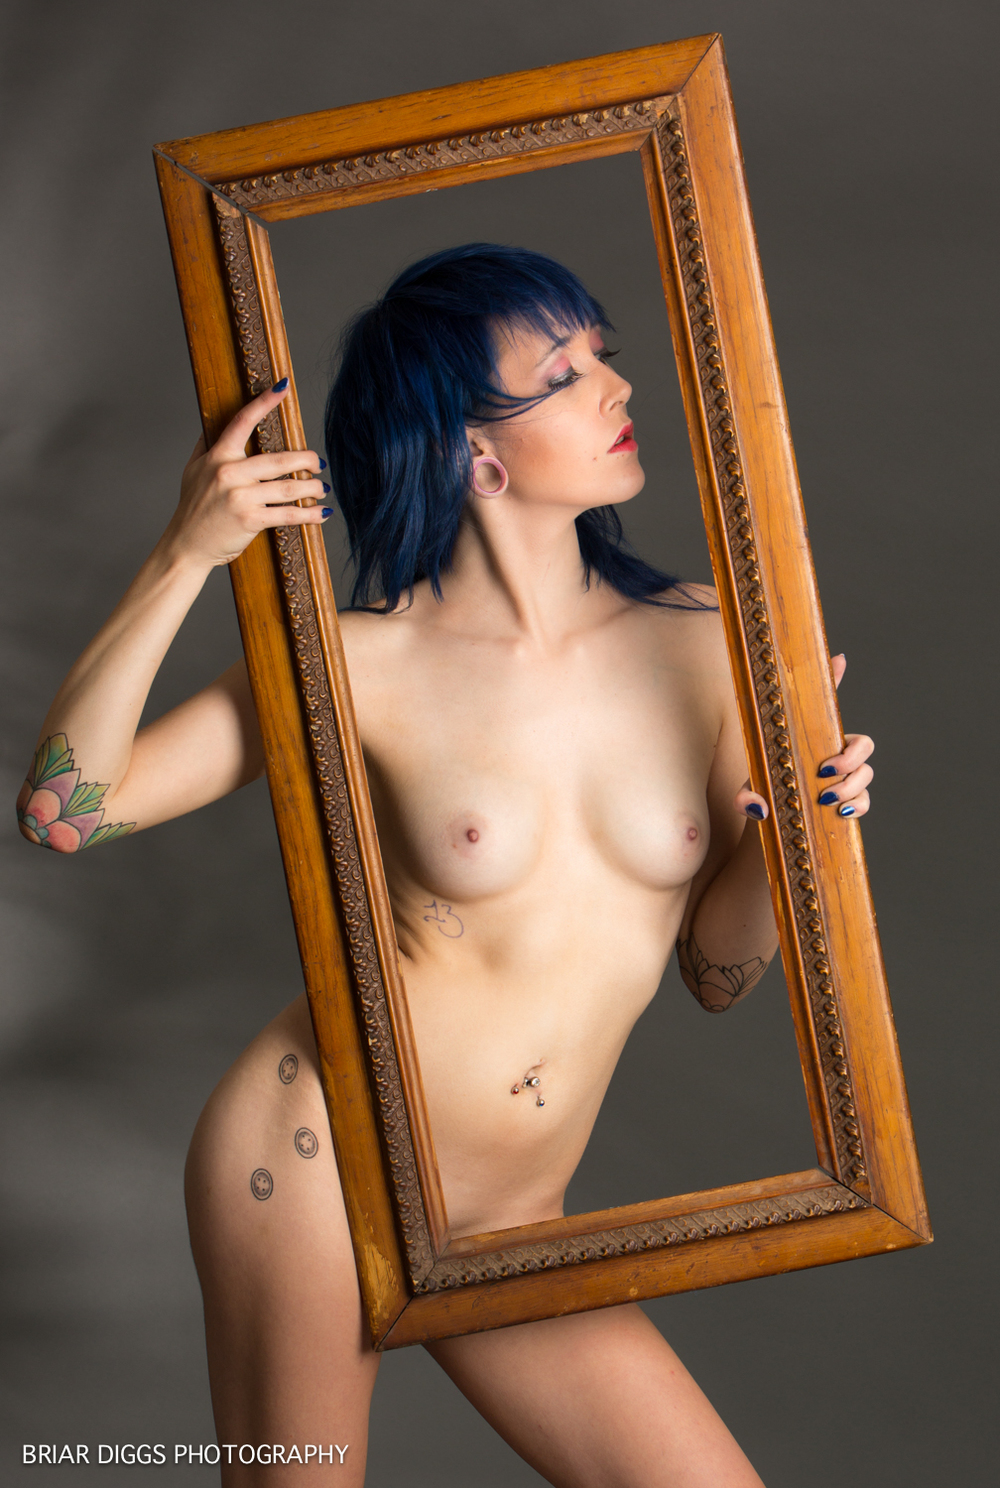 MODELS ART NUDES (COLOR)-35.jpg